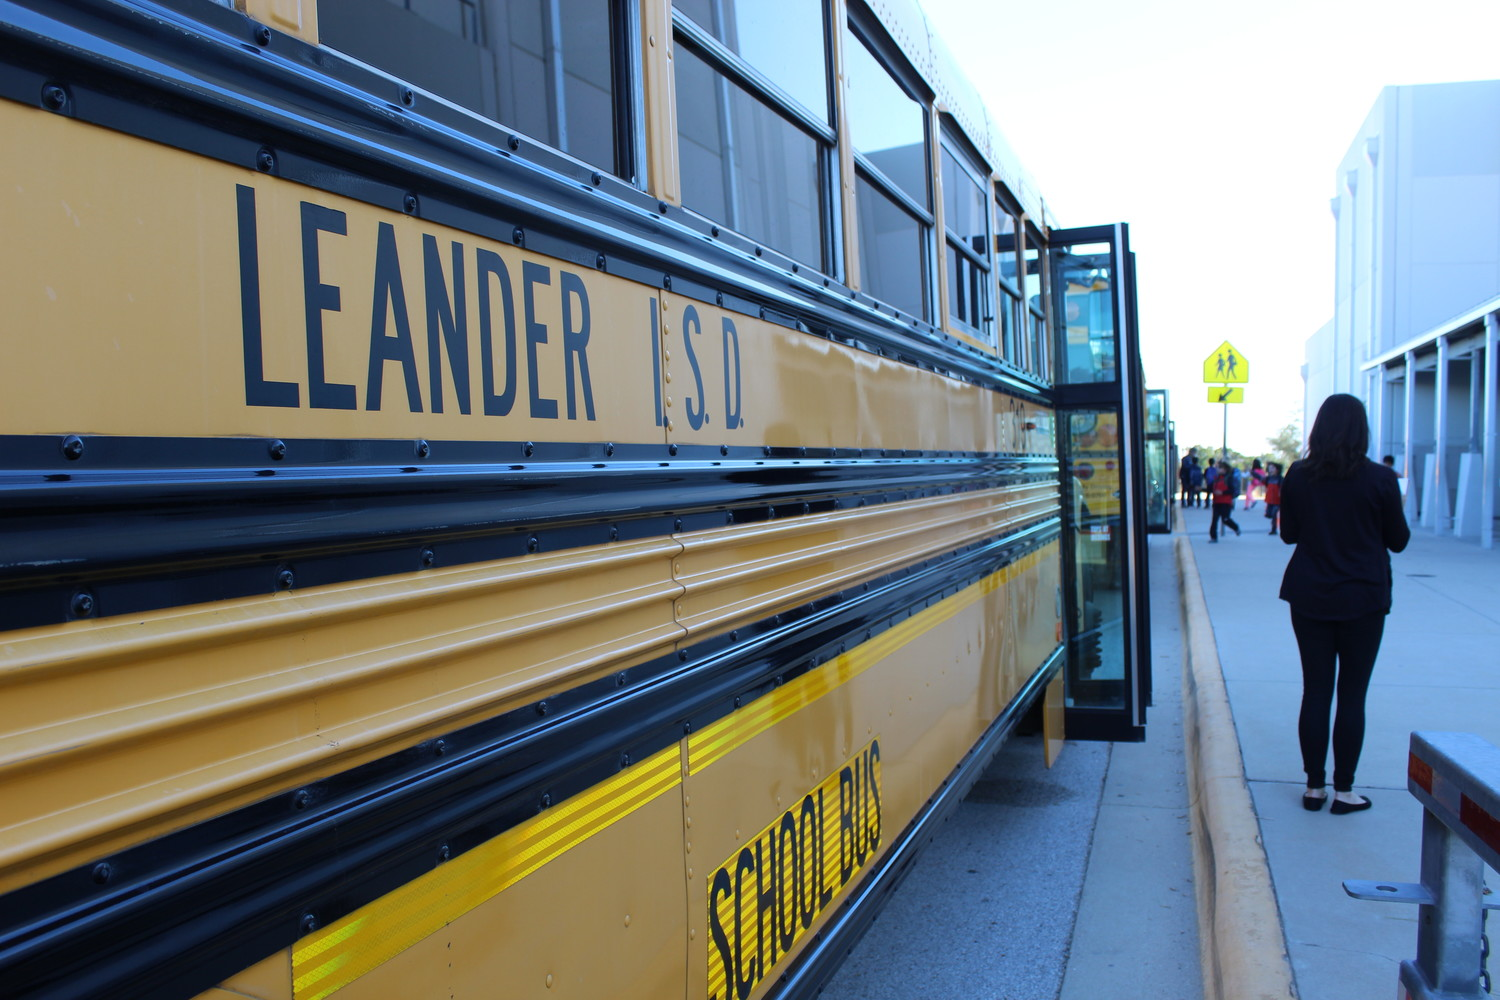 Leander ISD is trying to find and keep more quality bus drivers with a plan approved by the Board of trustees on Jan. 4 that will raise hourly wages to $16.50, among other incentives.